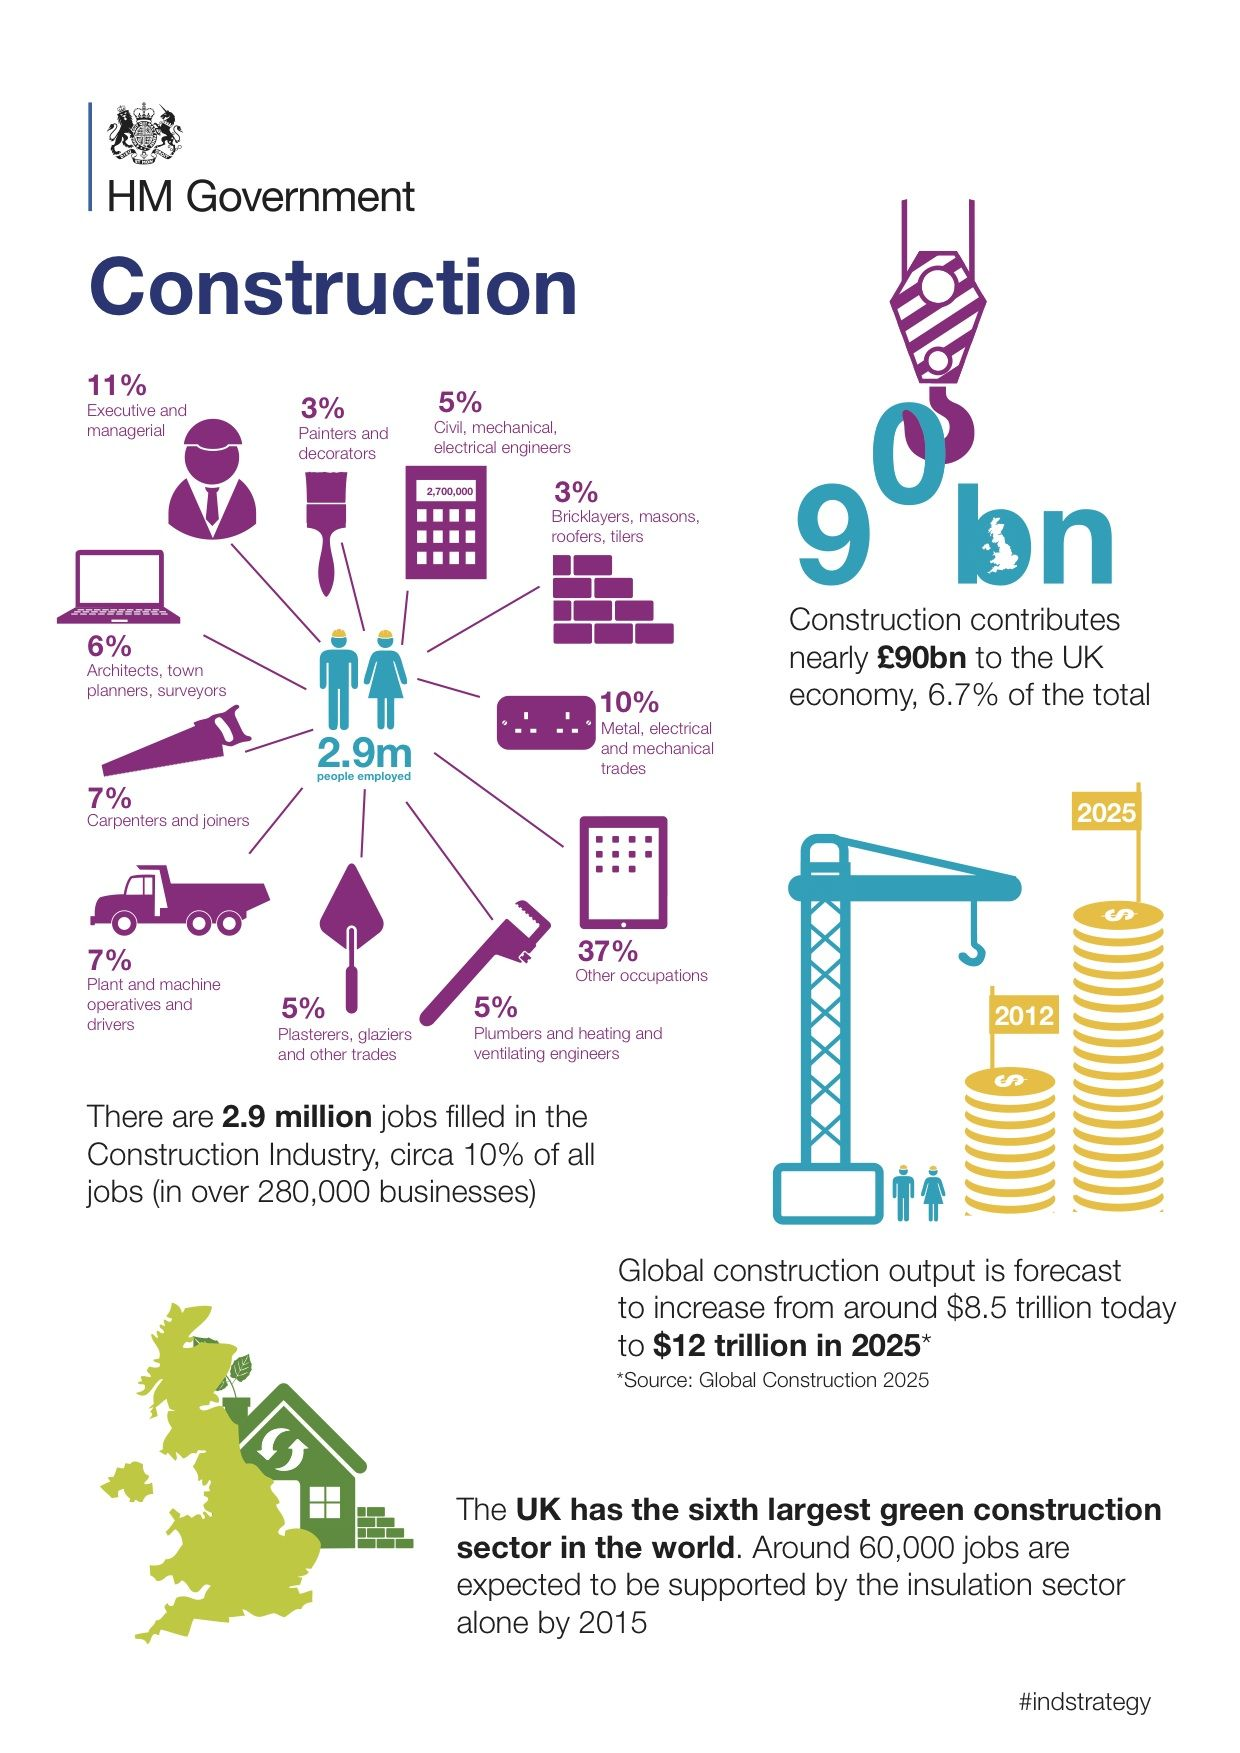 The Uk Construction Industry Facts And Ures From Hm Government. The Uk Construction Industry Facts And Ures From Hm Government General Process. Wiring. General Construction Diagram At Scoala.co